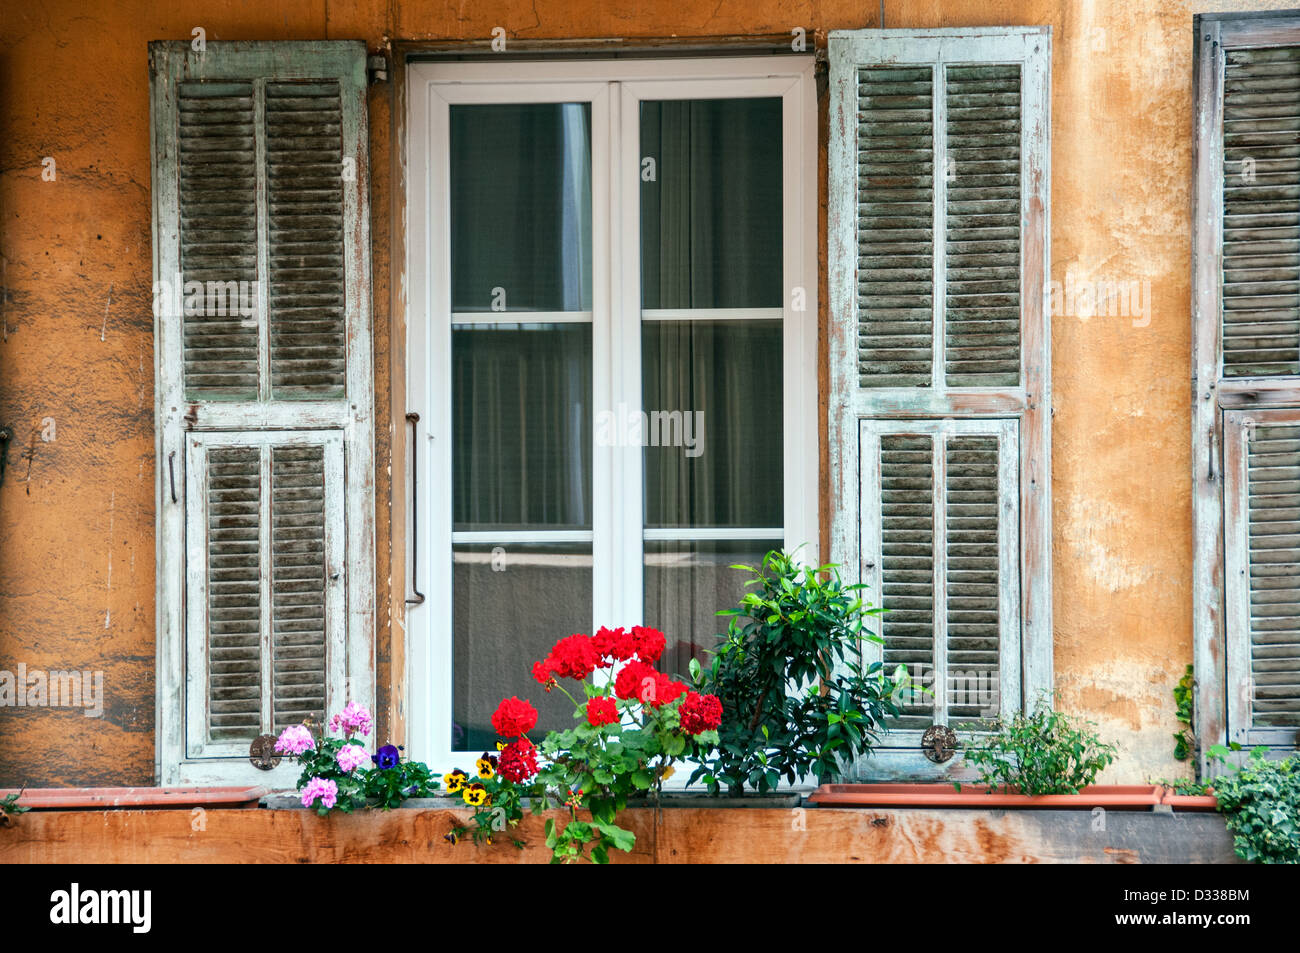 Windows in the Old Nice France - Stock Image